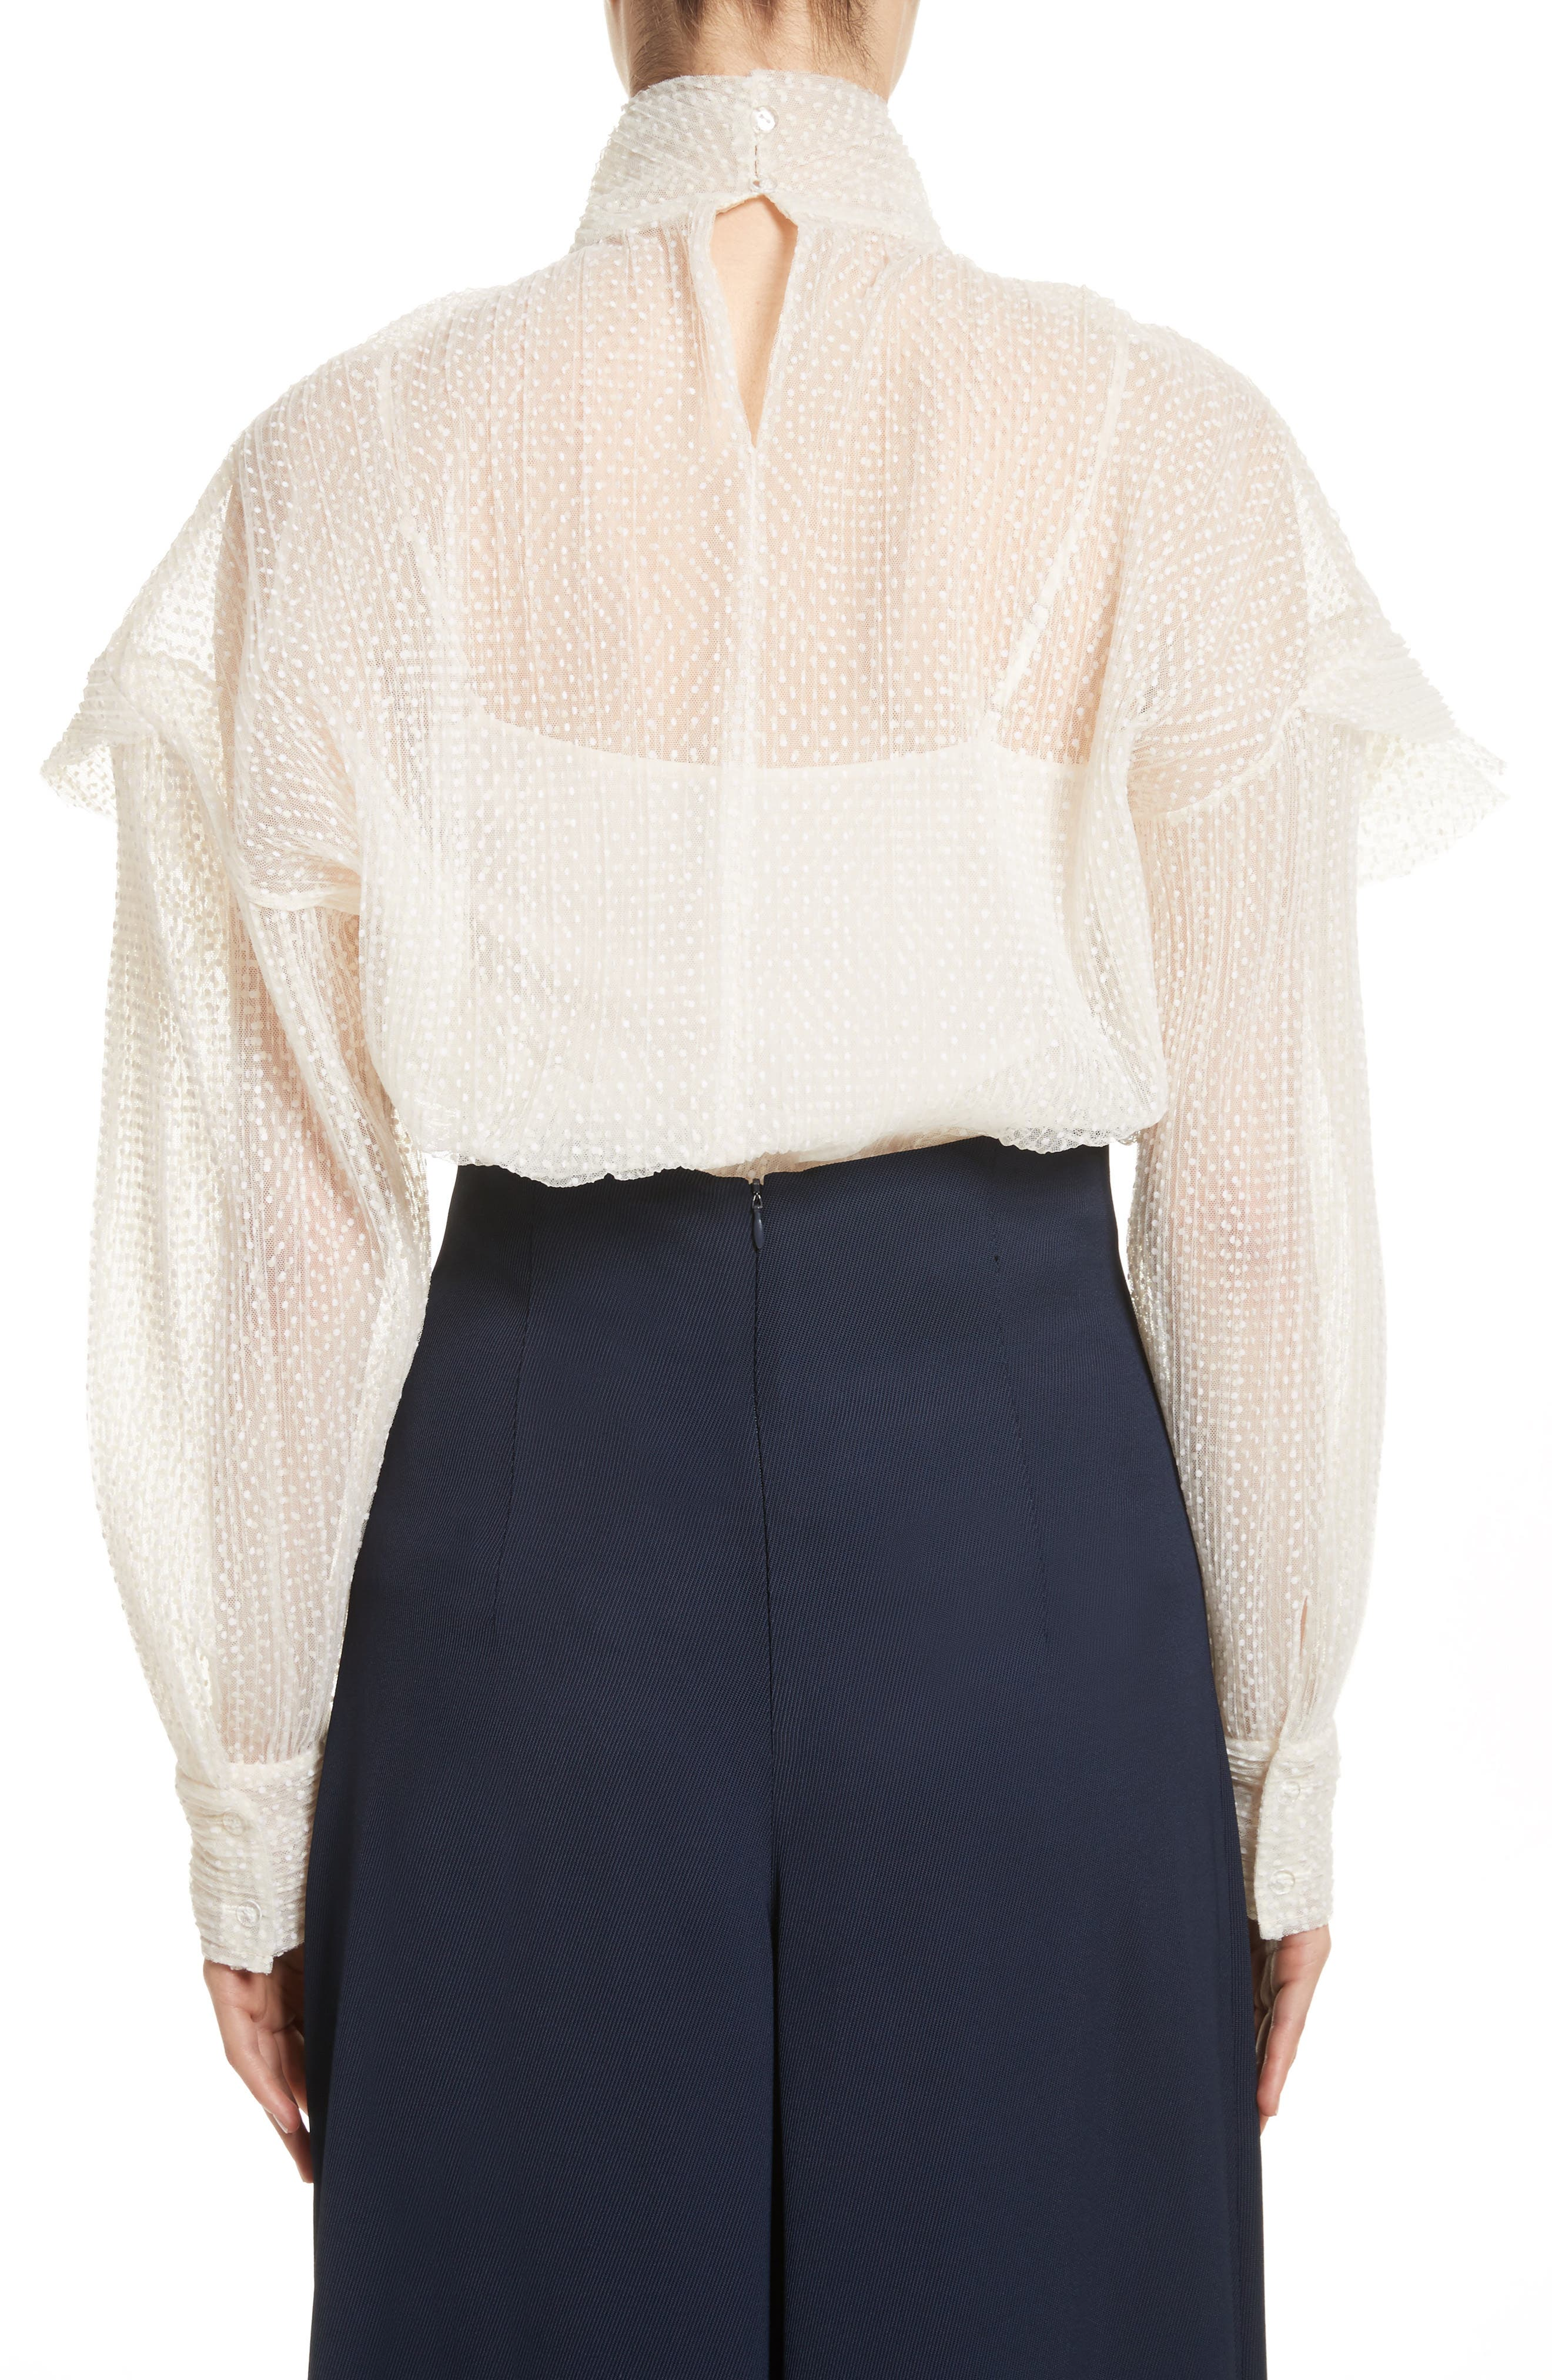 A.W.A.K.E Frill Double Layered Tulle Top,                             Alternate thumbnail 2, color,                             Cream